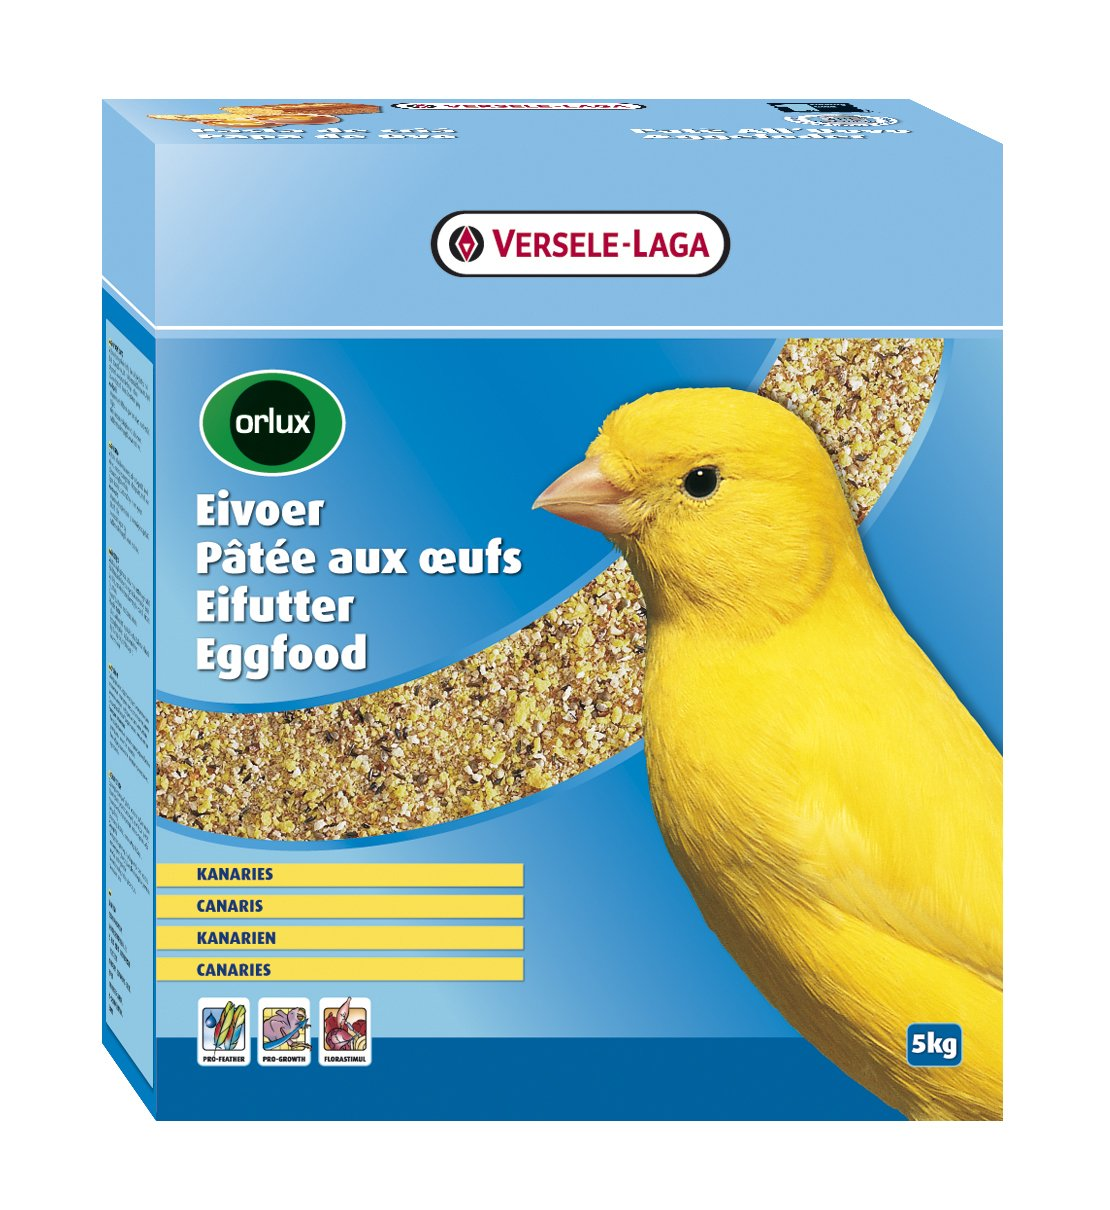 Amazon.com : Versele Laga Orlux Vl Orlux Canary Dry Eggfood 5Kg : Pet Food : Pet Supplies